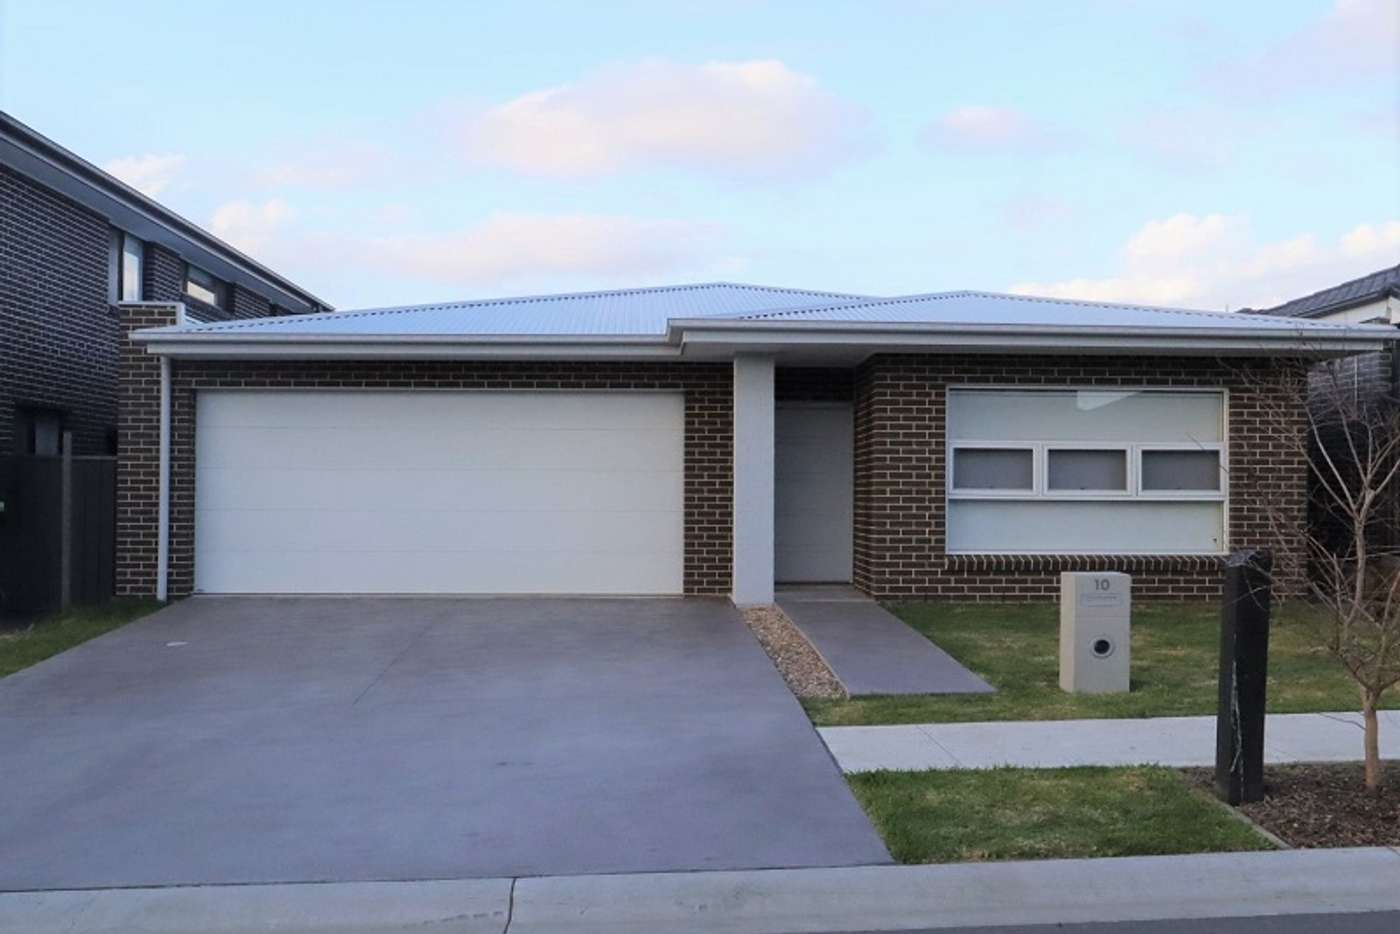 Main view of Homely house listing, 10 Stonecrop Street, Denham Court NSW 2565